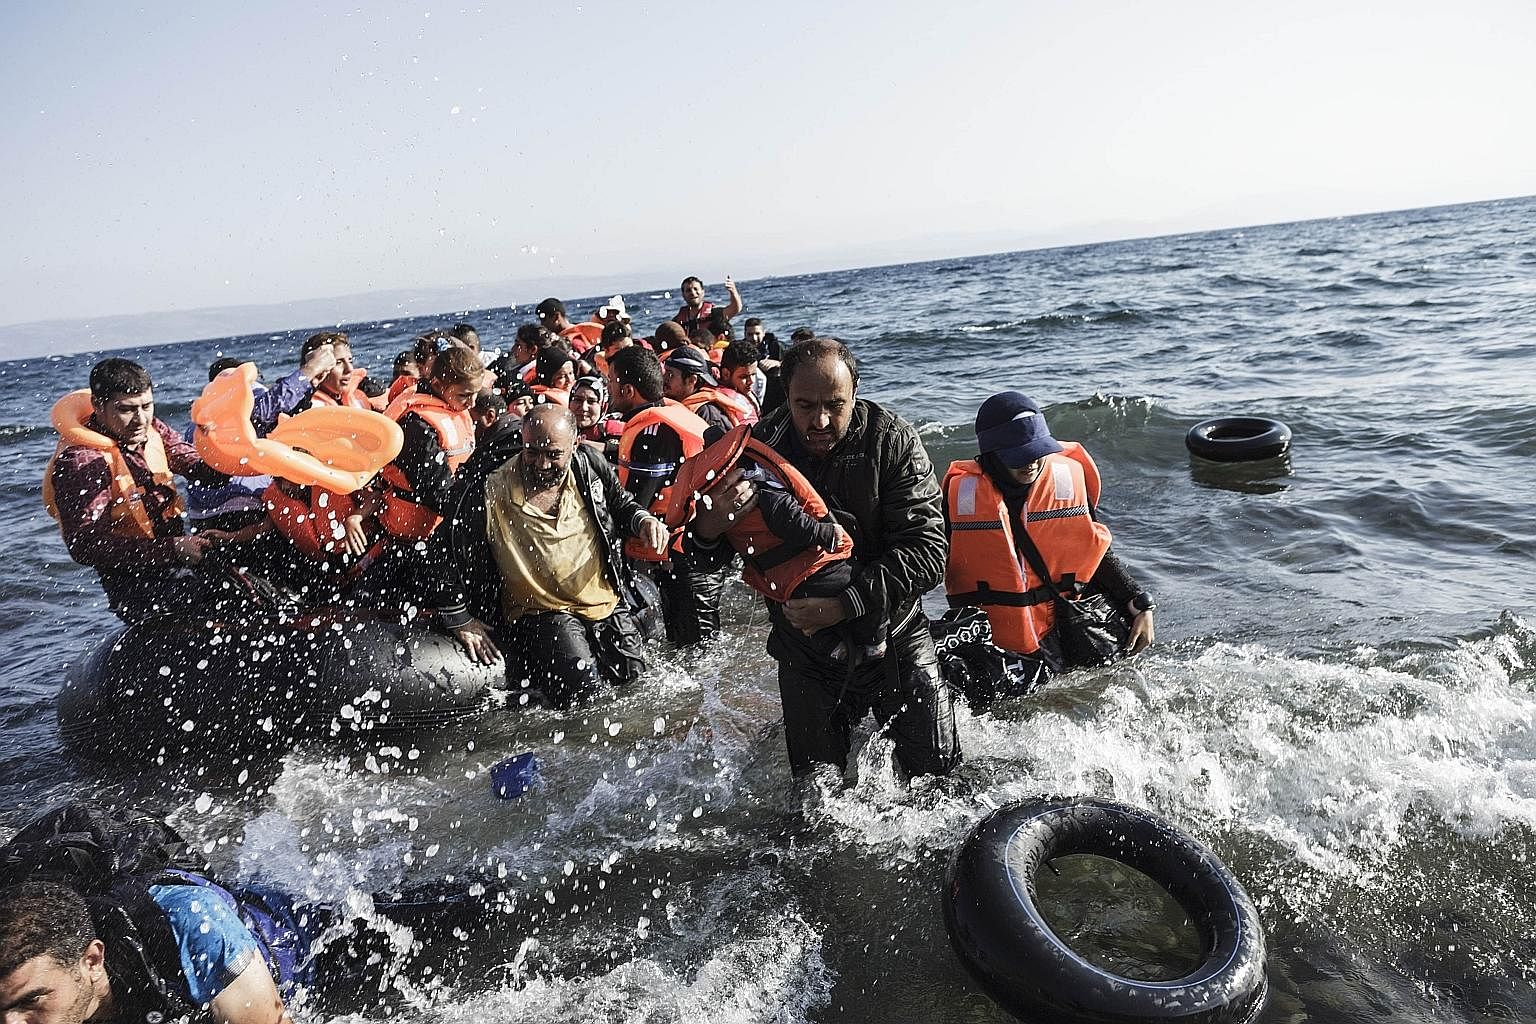 Syrian refugees arriving on the shores of the Greek island Lesbos in an inflatable boat from Turkey last month.